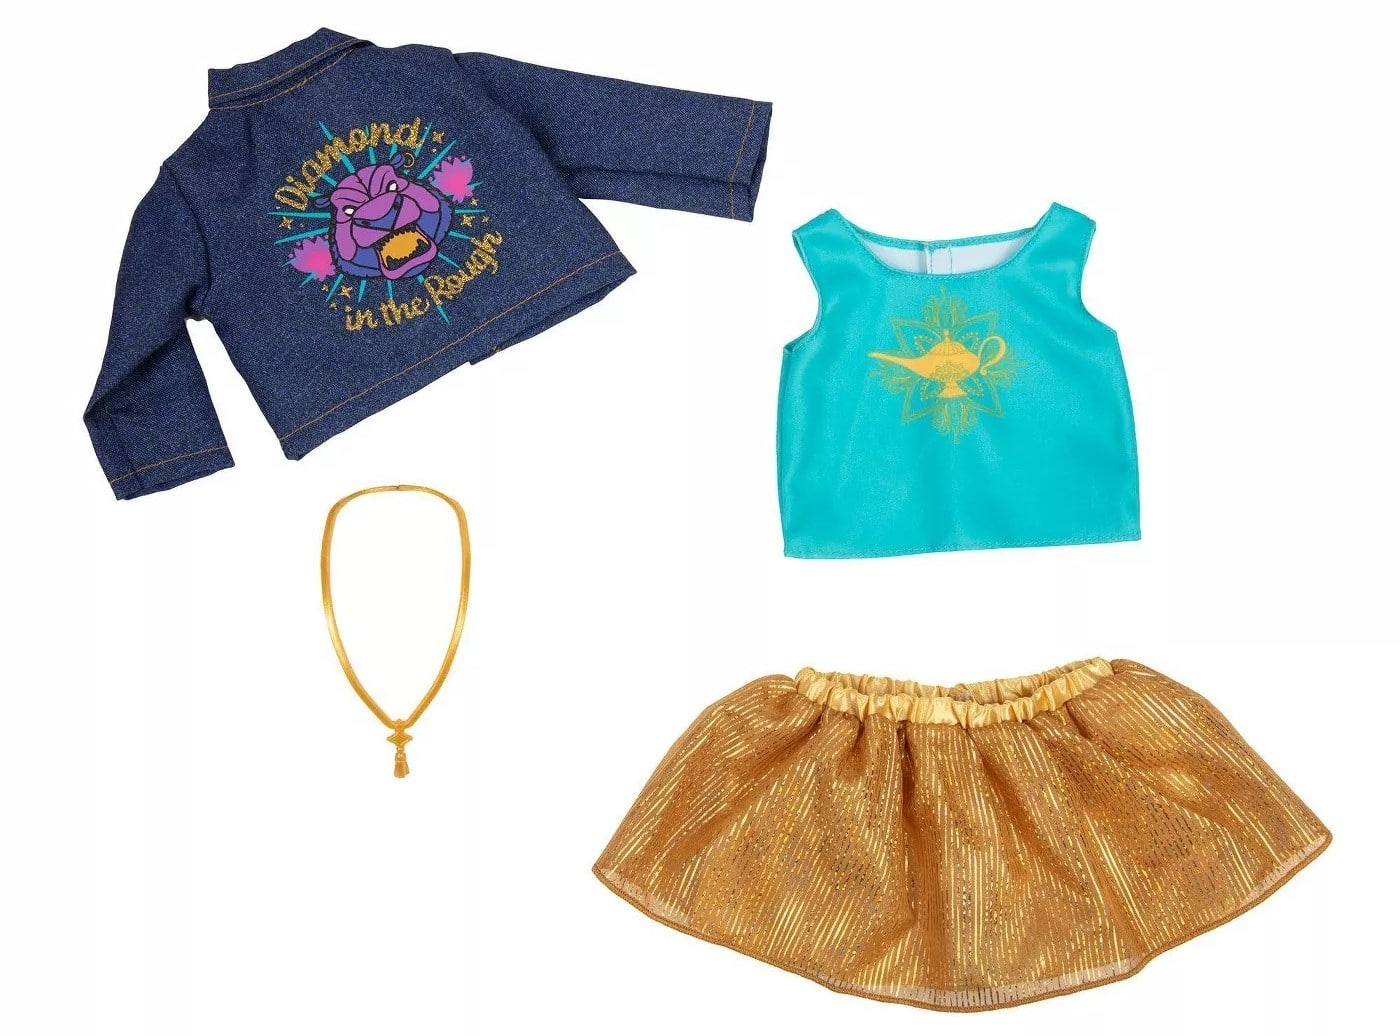 Disney ily 4EVER fashion doll collection is now available at Target 24